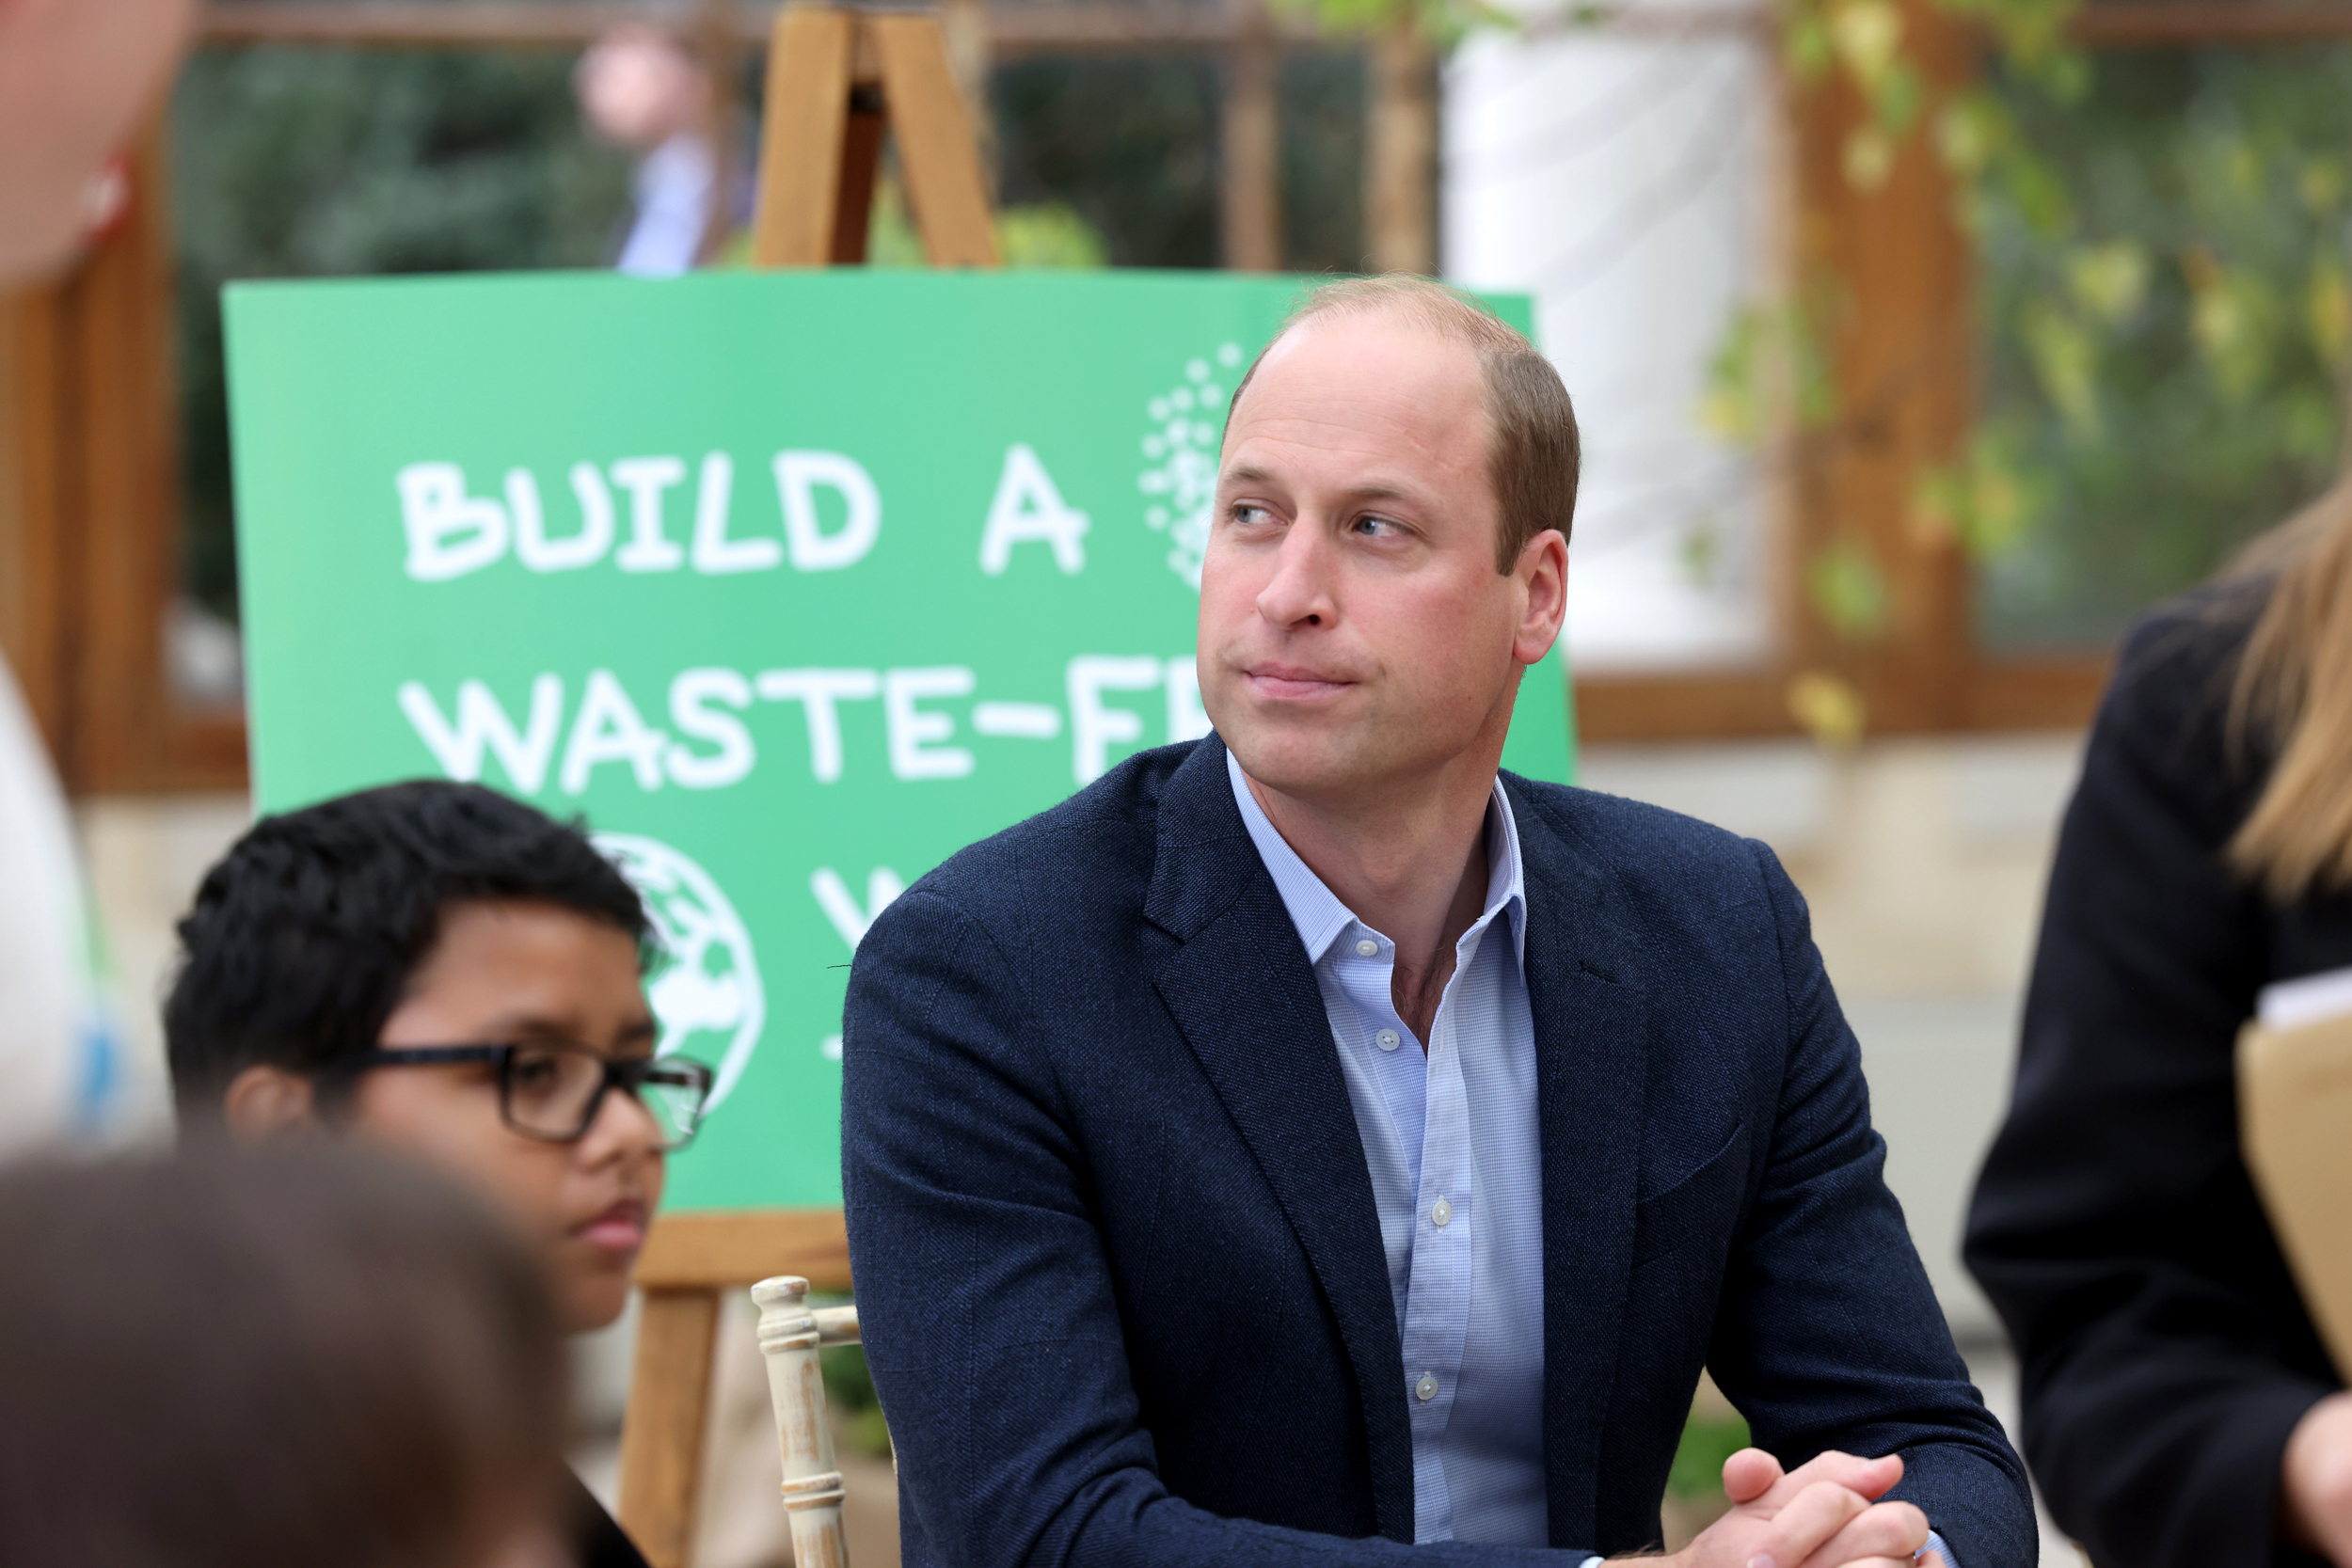 Prince-William-tells-billionaires:-Forget-space-race-and-focus-on-saving-Earth